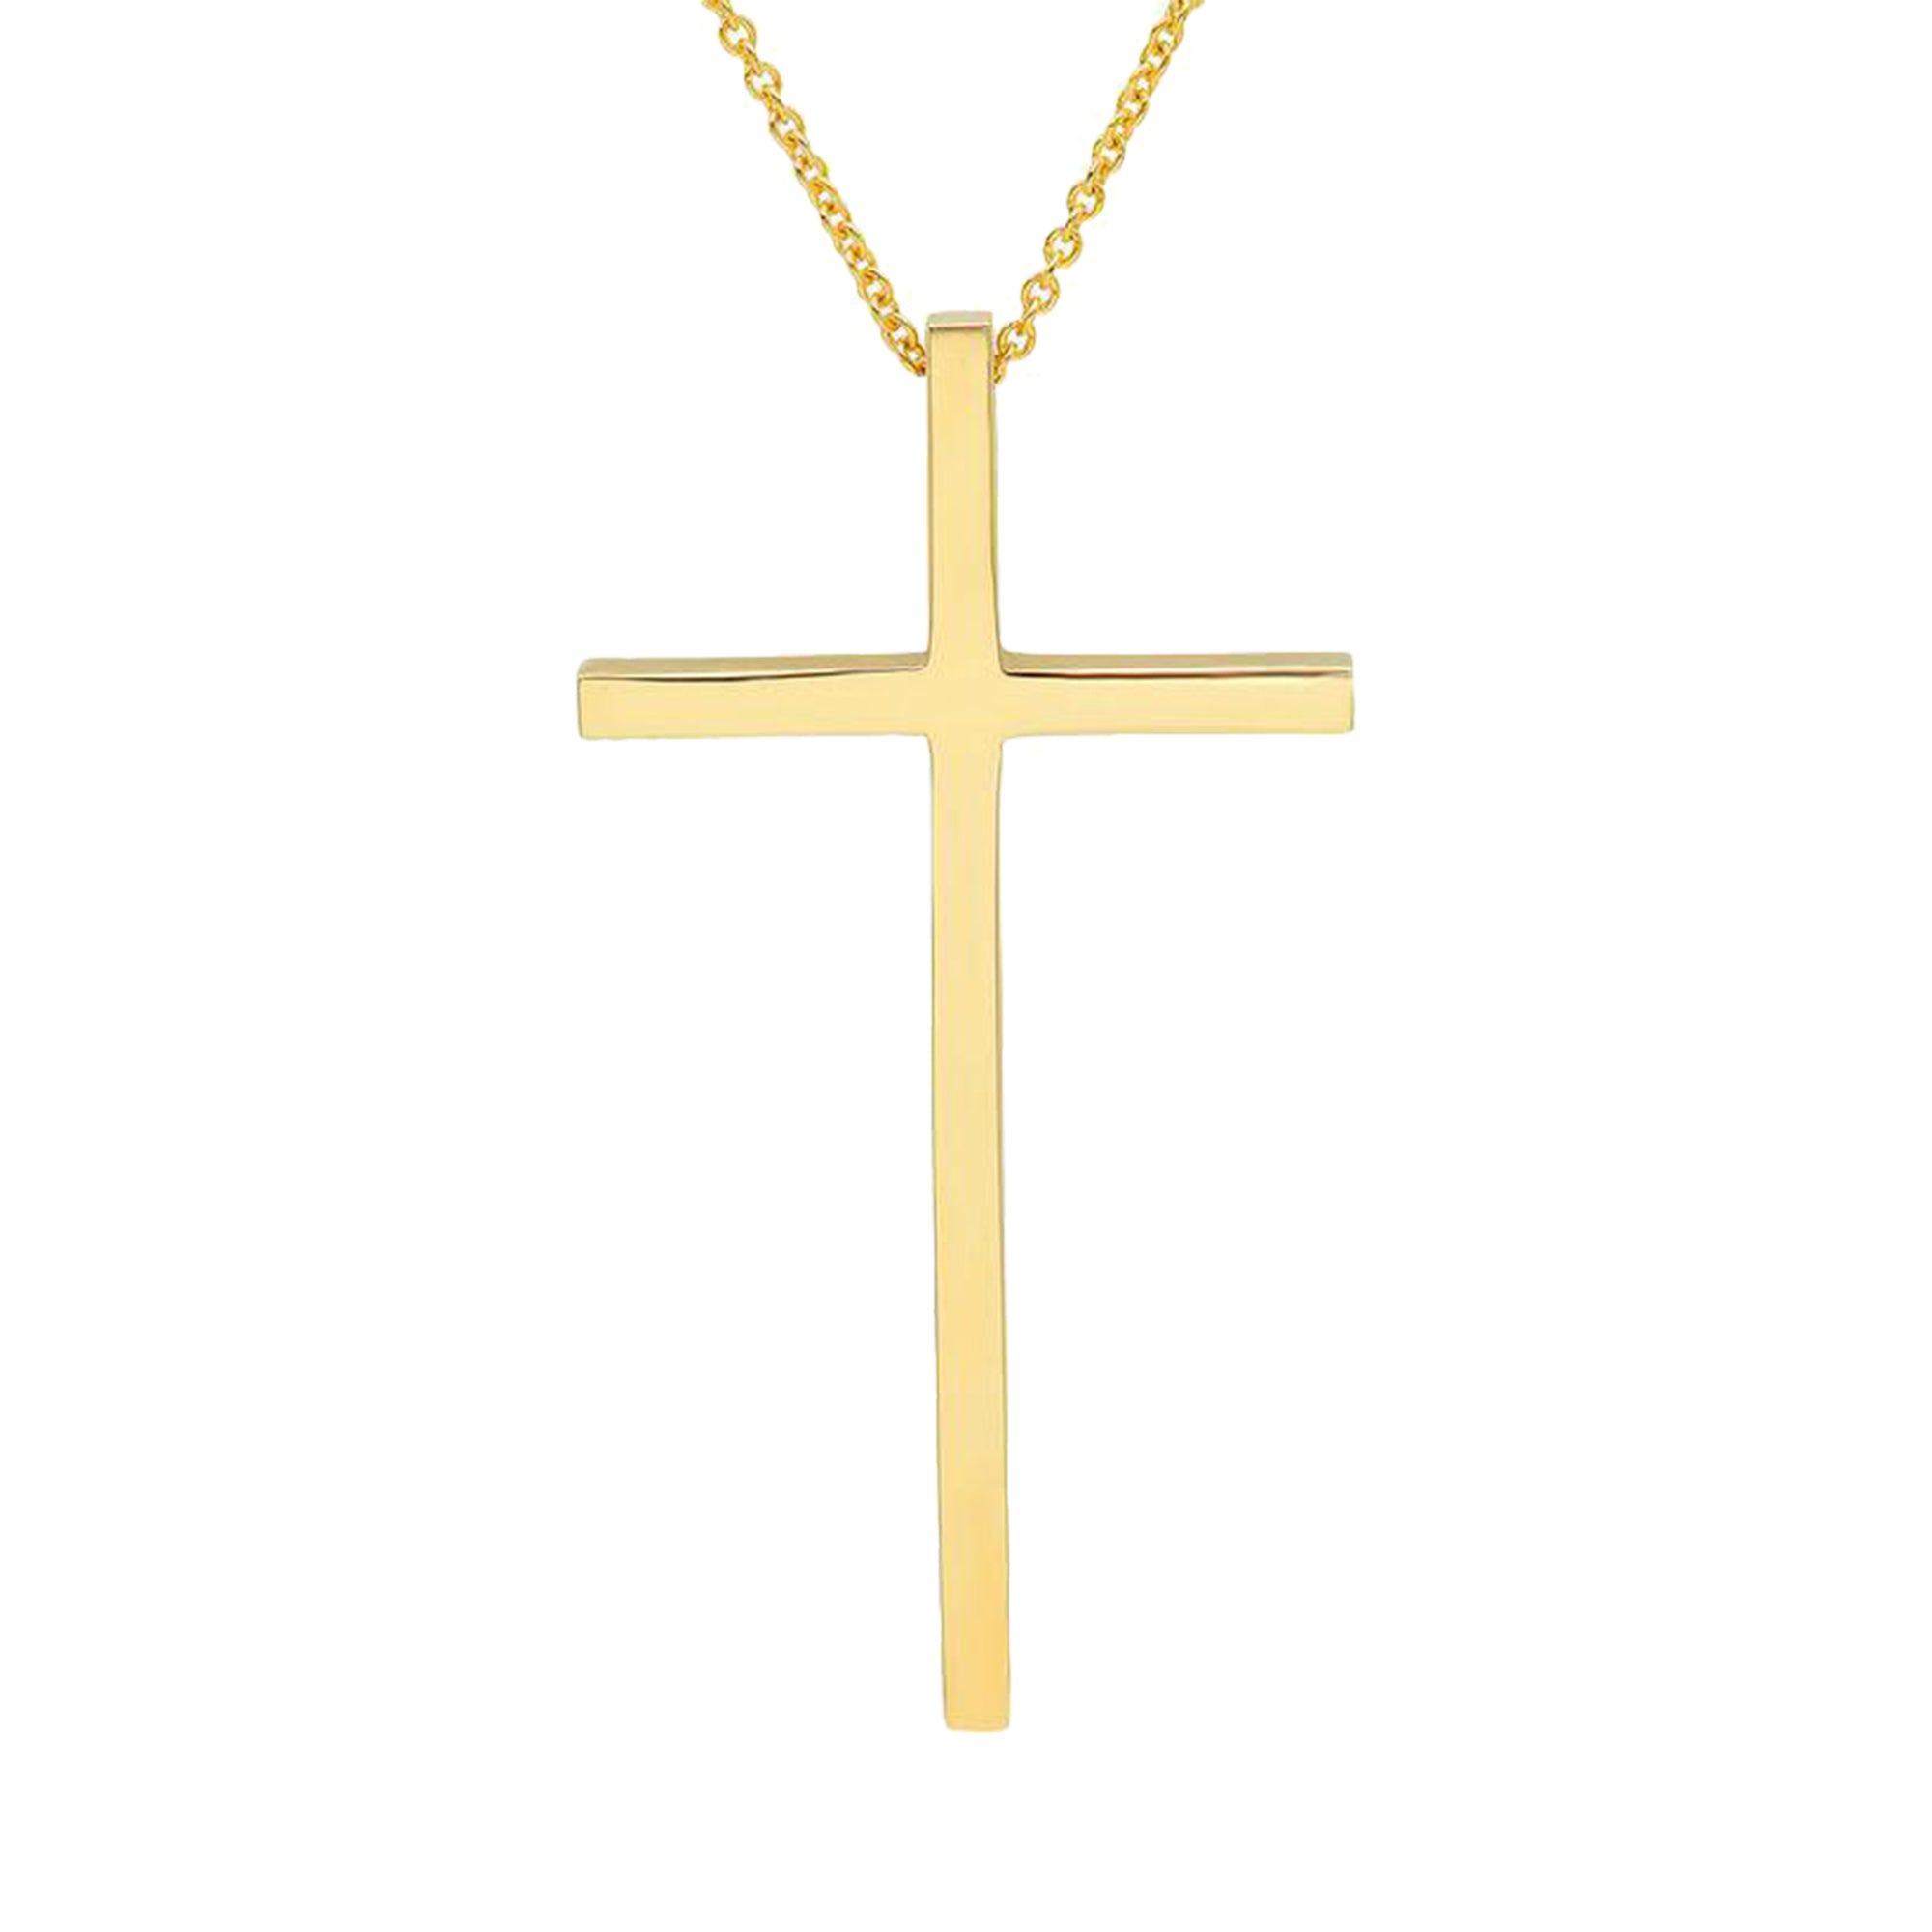 Gold Cross Necklace by Established for Broken English Jewelry